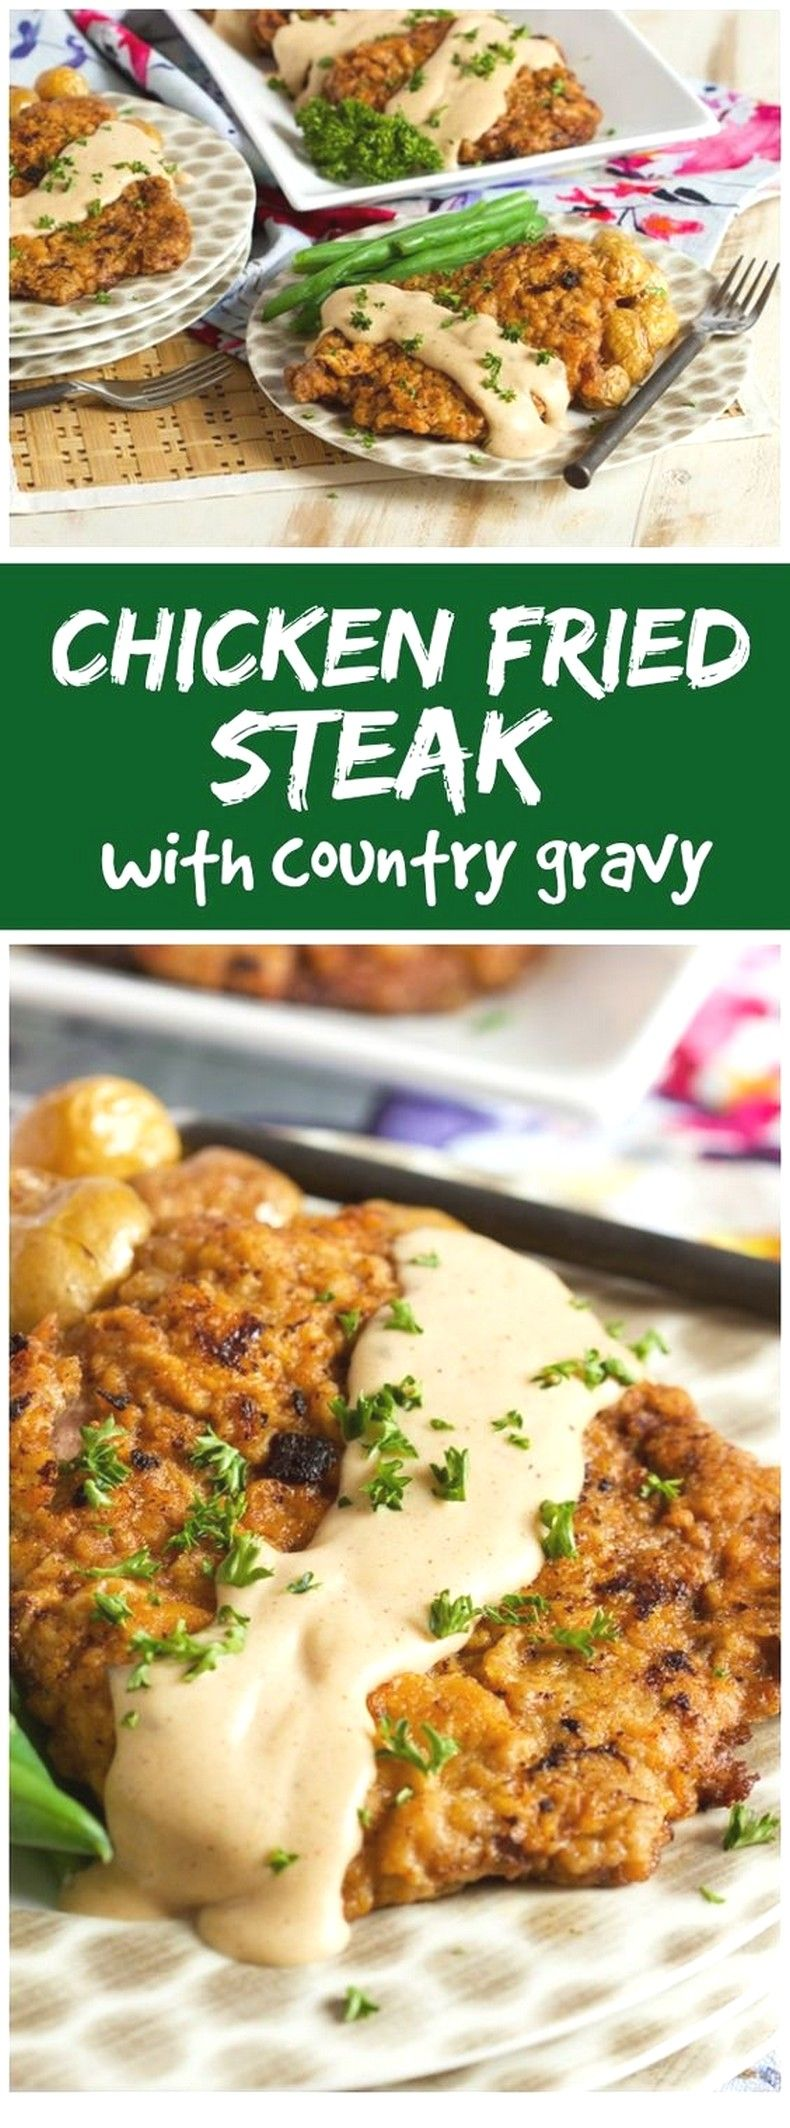 Beef Recipes Ideas | Chicken Fried Steak With Country Gravy images